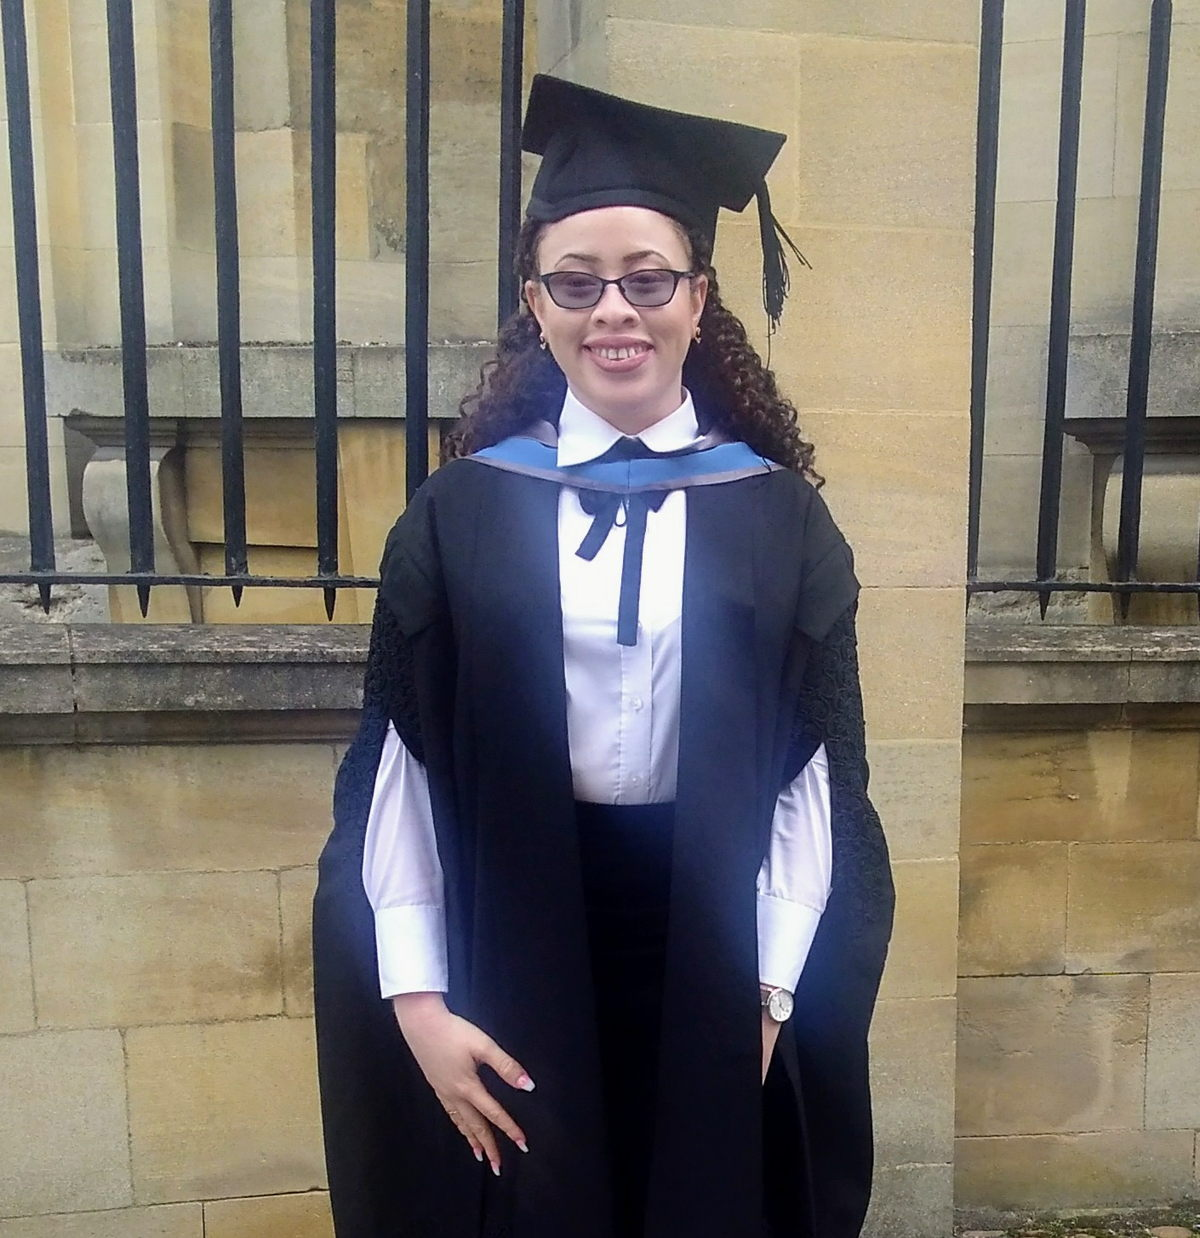 Aria's Graduation Day, University of Oxford.